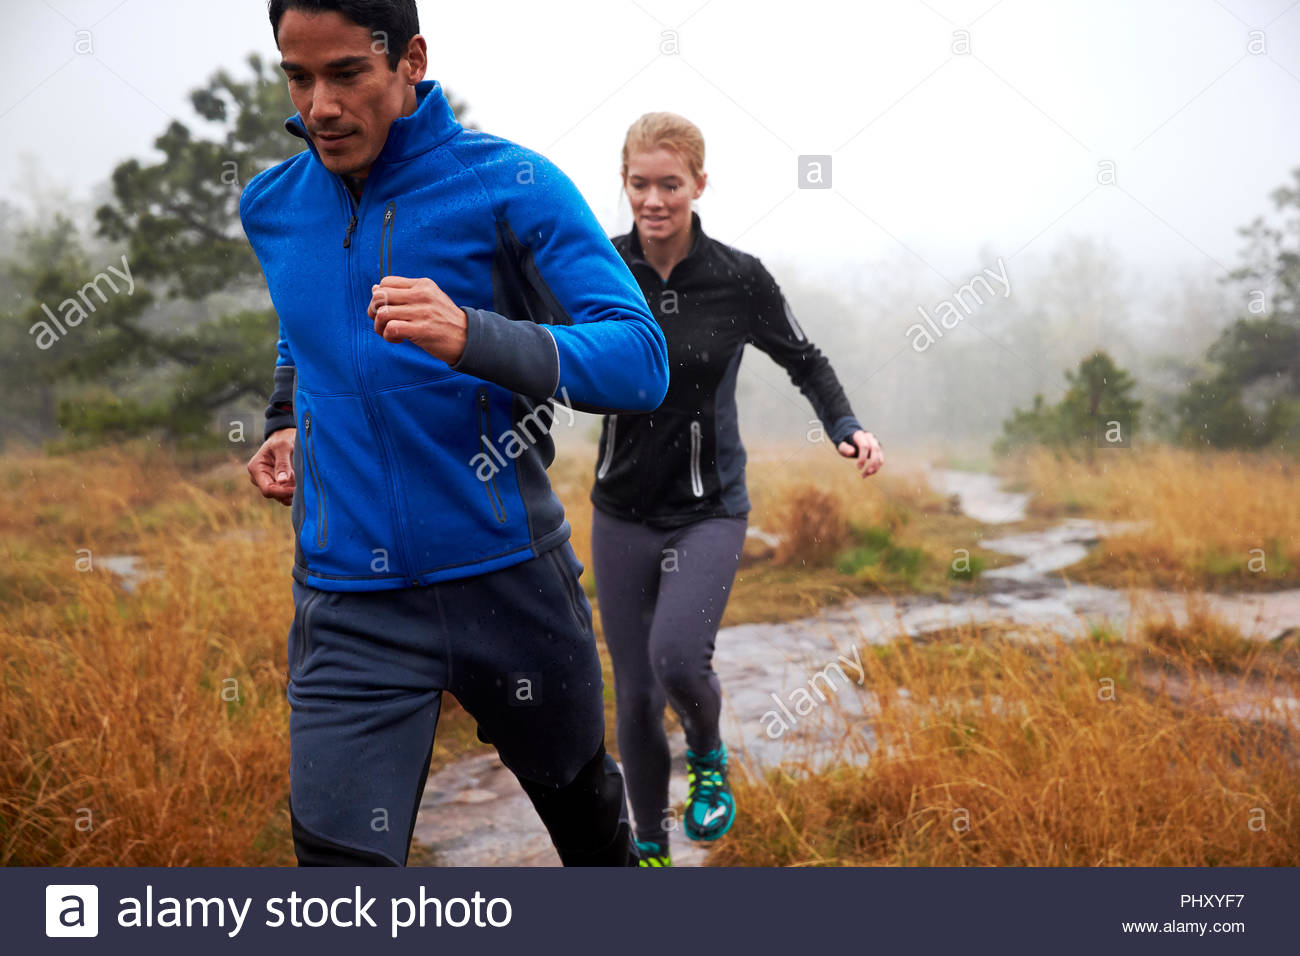 Young couple running in a river - Stock Image